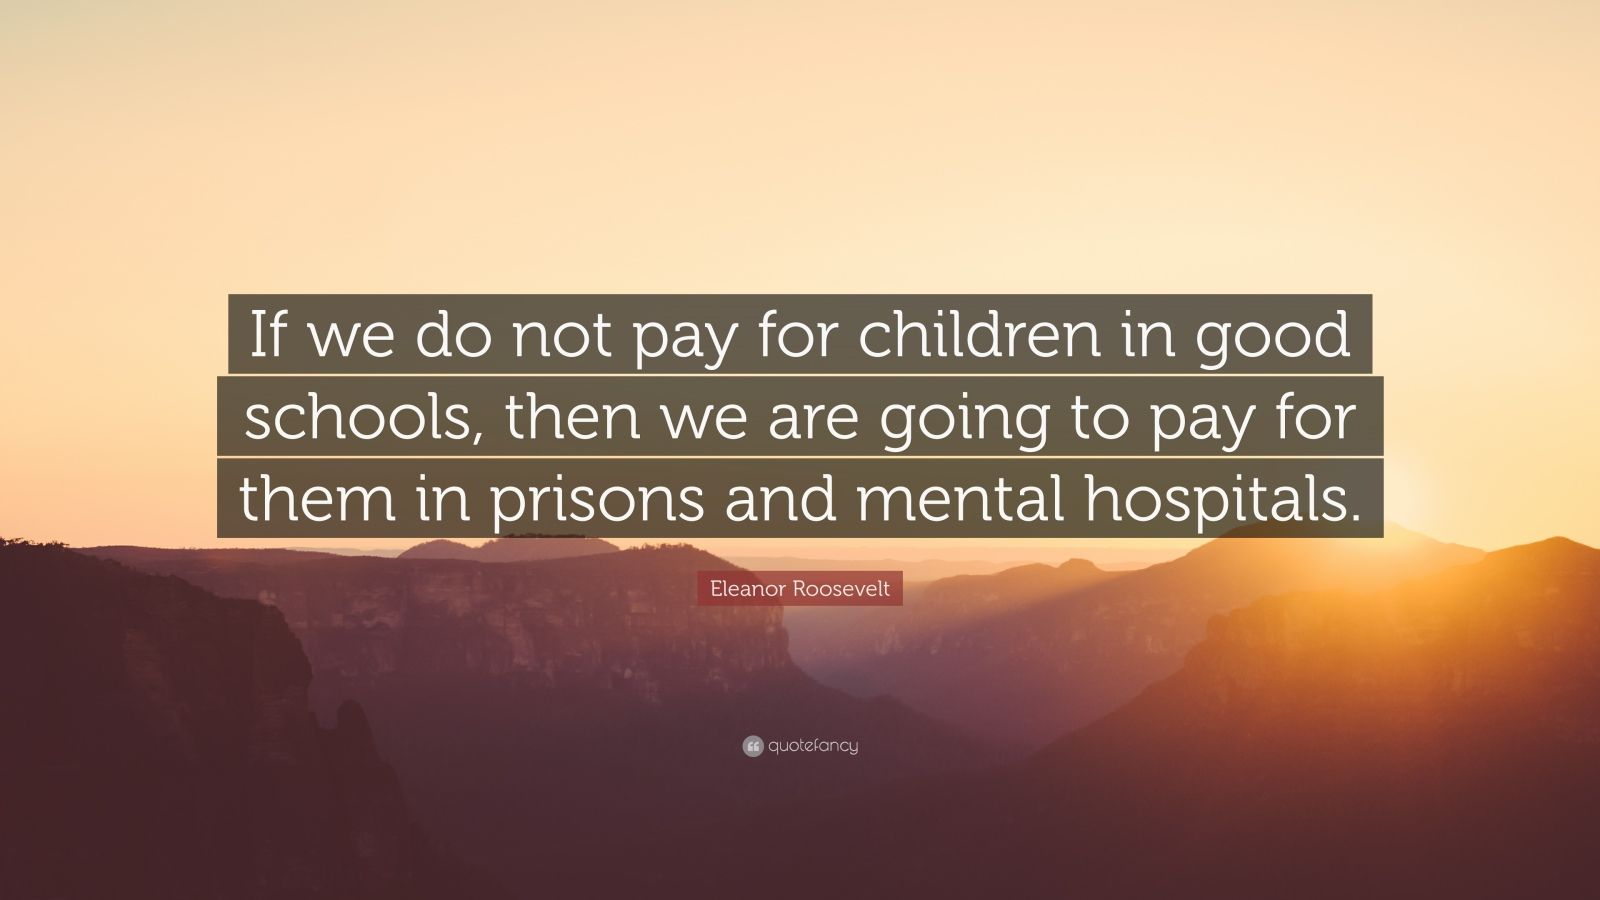 """Eleanor Roosevelt Quote: """"If we do not pay for children in good schools, then we are going to pay for them in prisons and mental hospitals."""""""